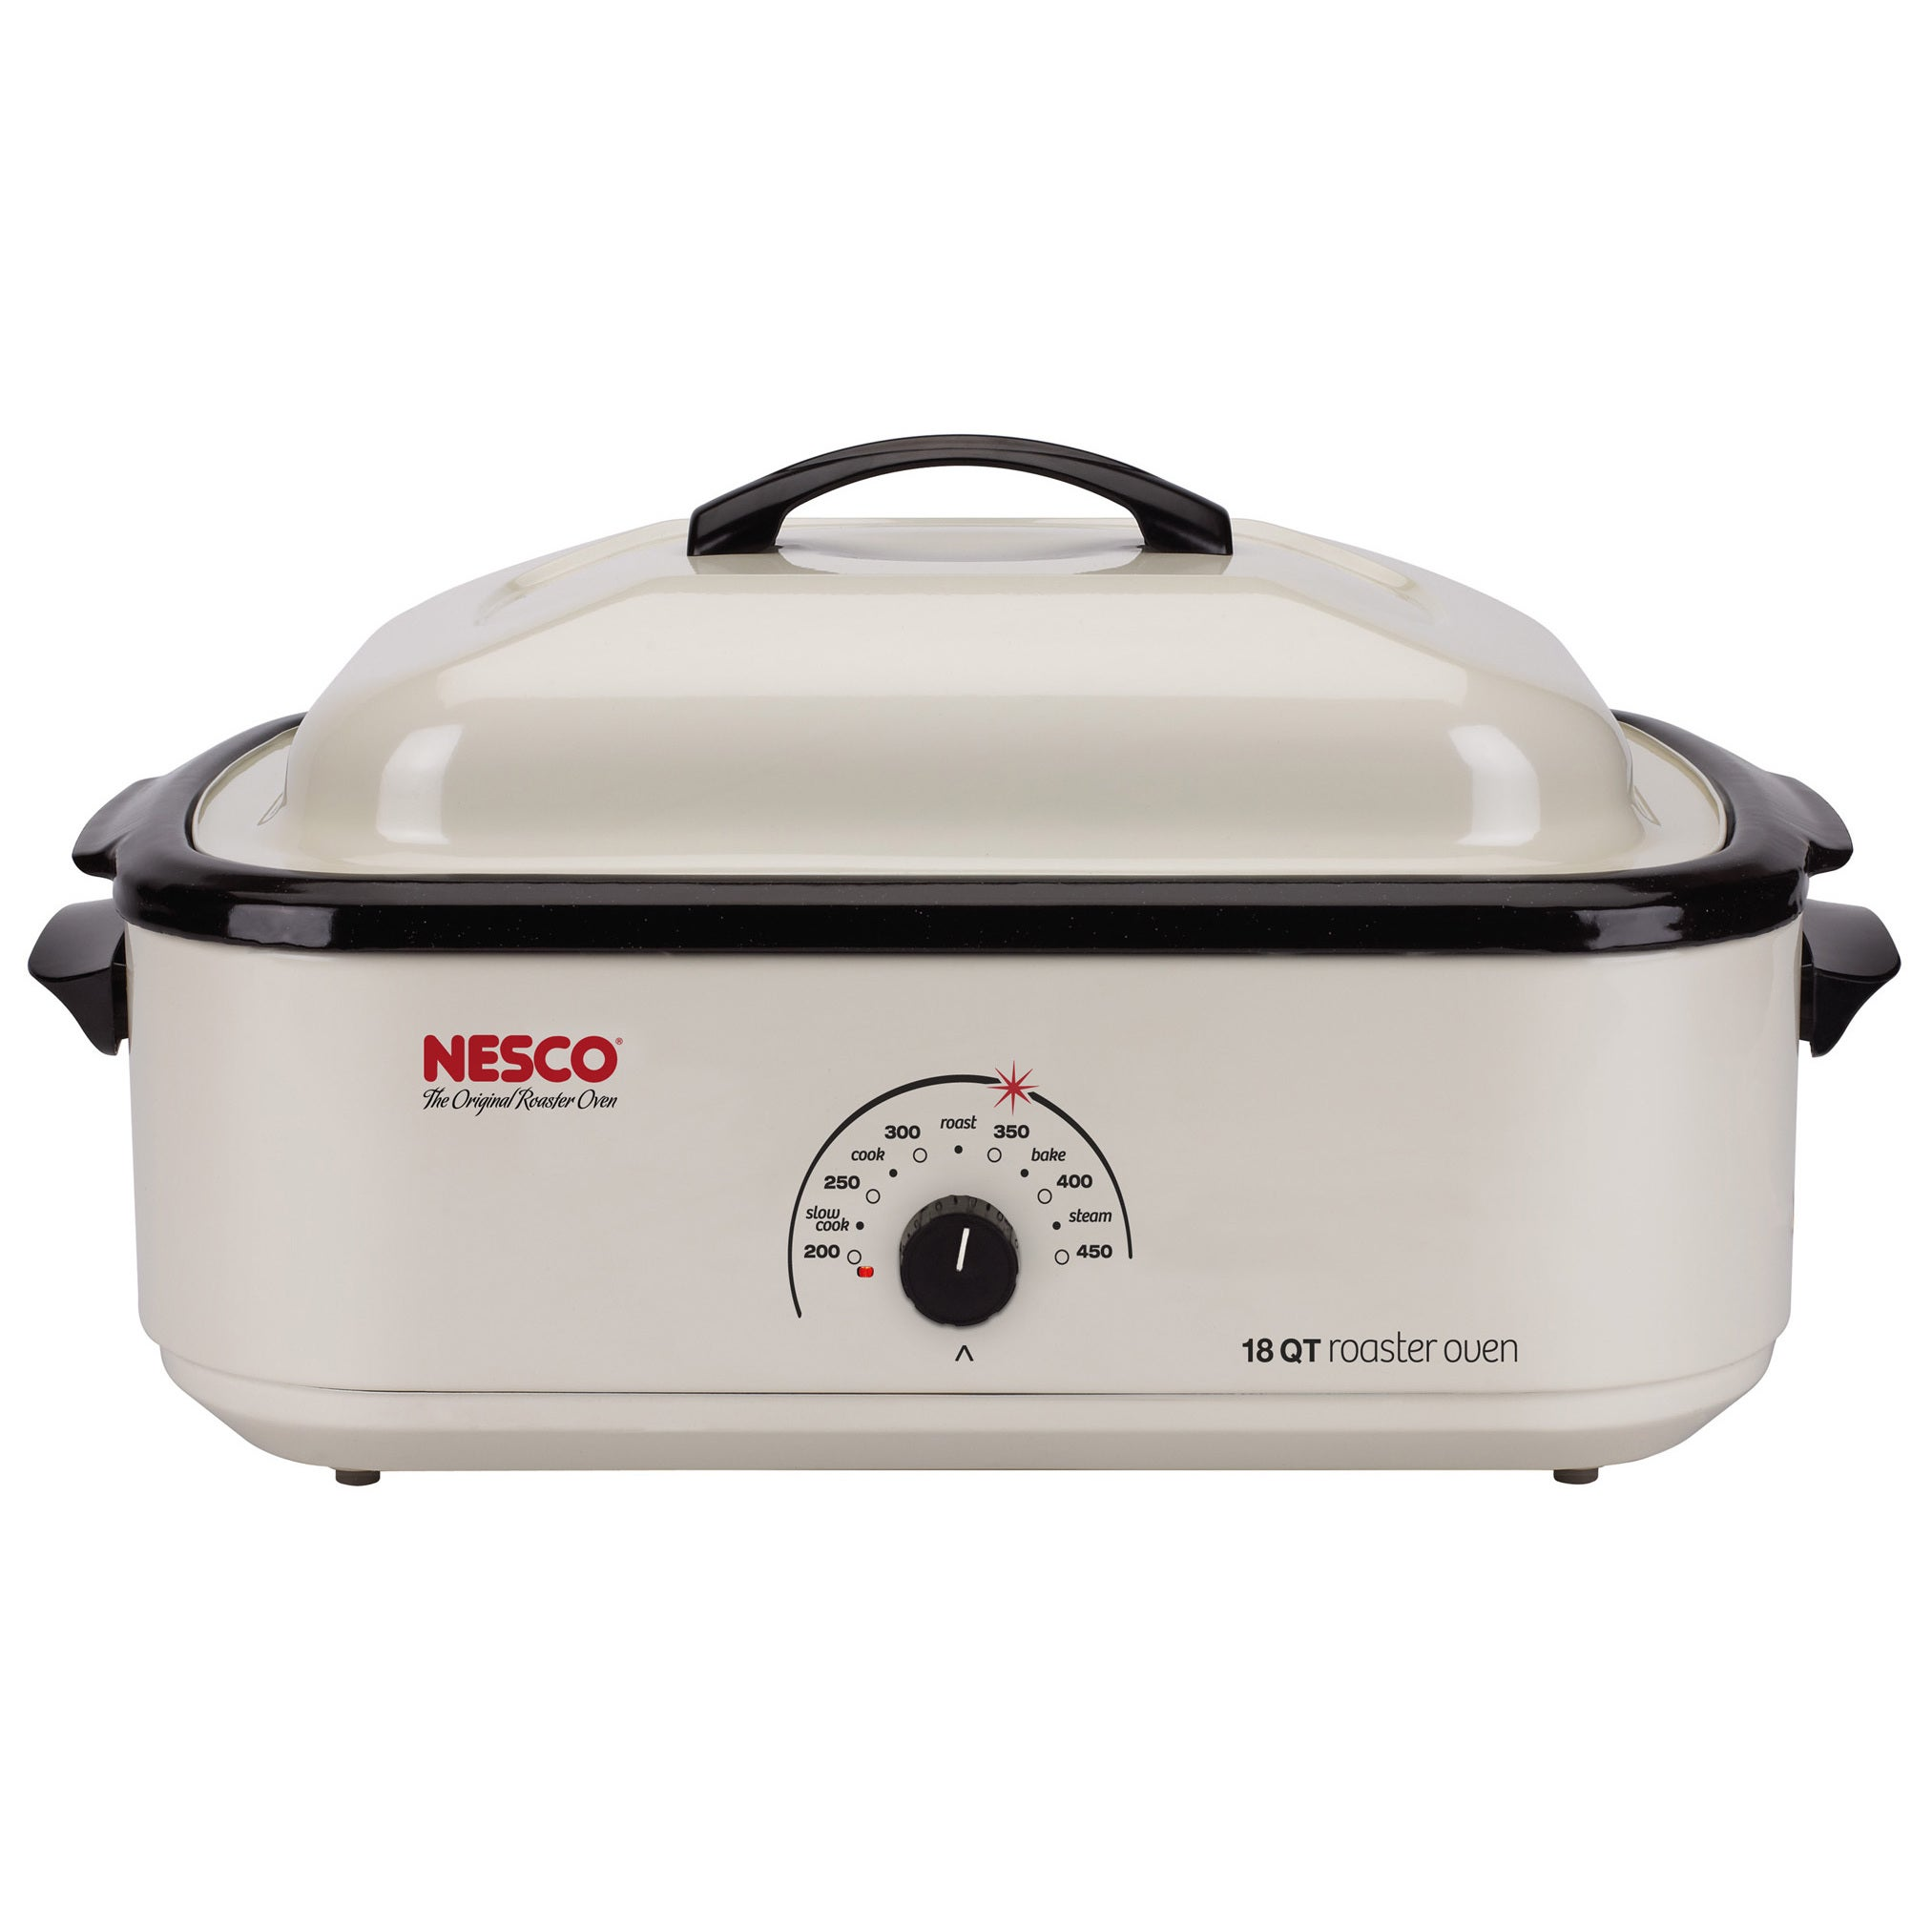 Nesco 4818-14 18-quart Electric Roaster Oven, White (Metal)